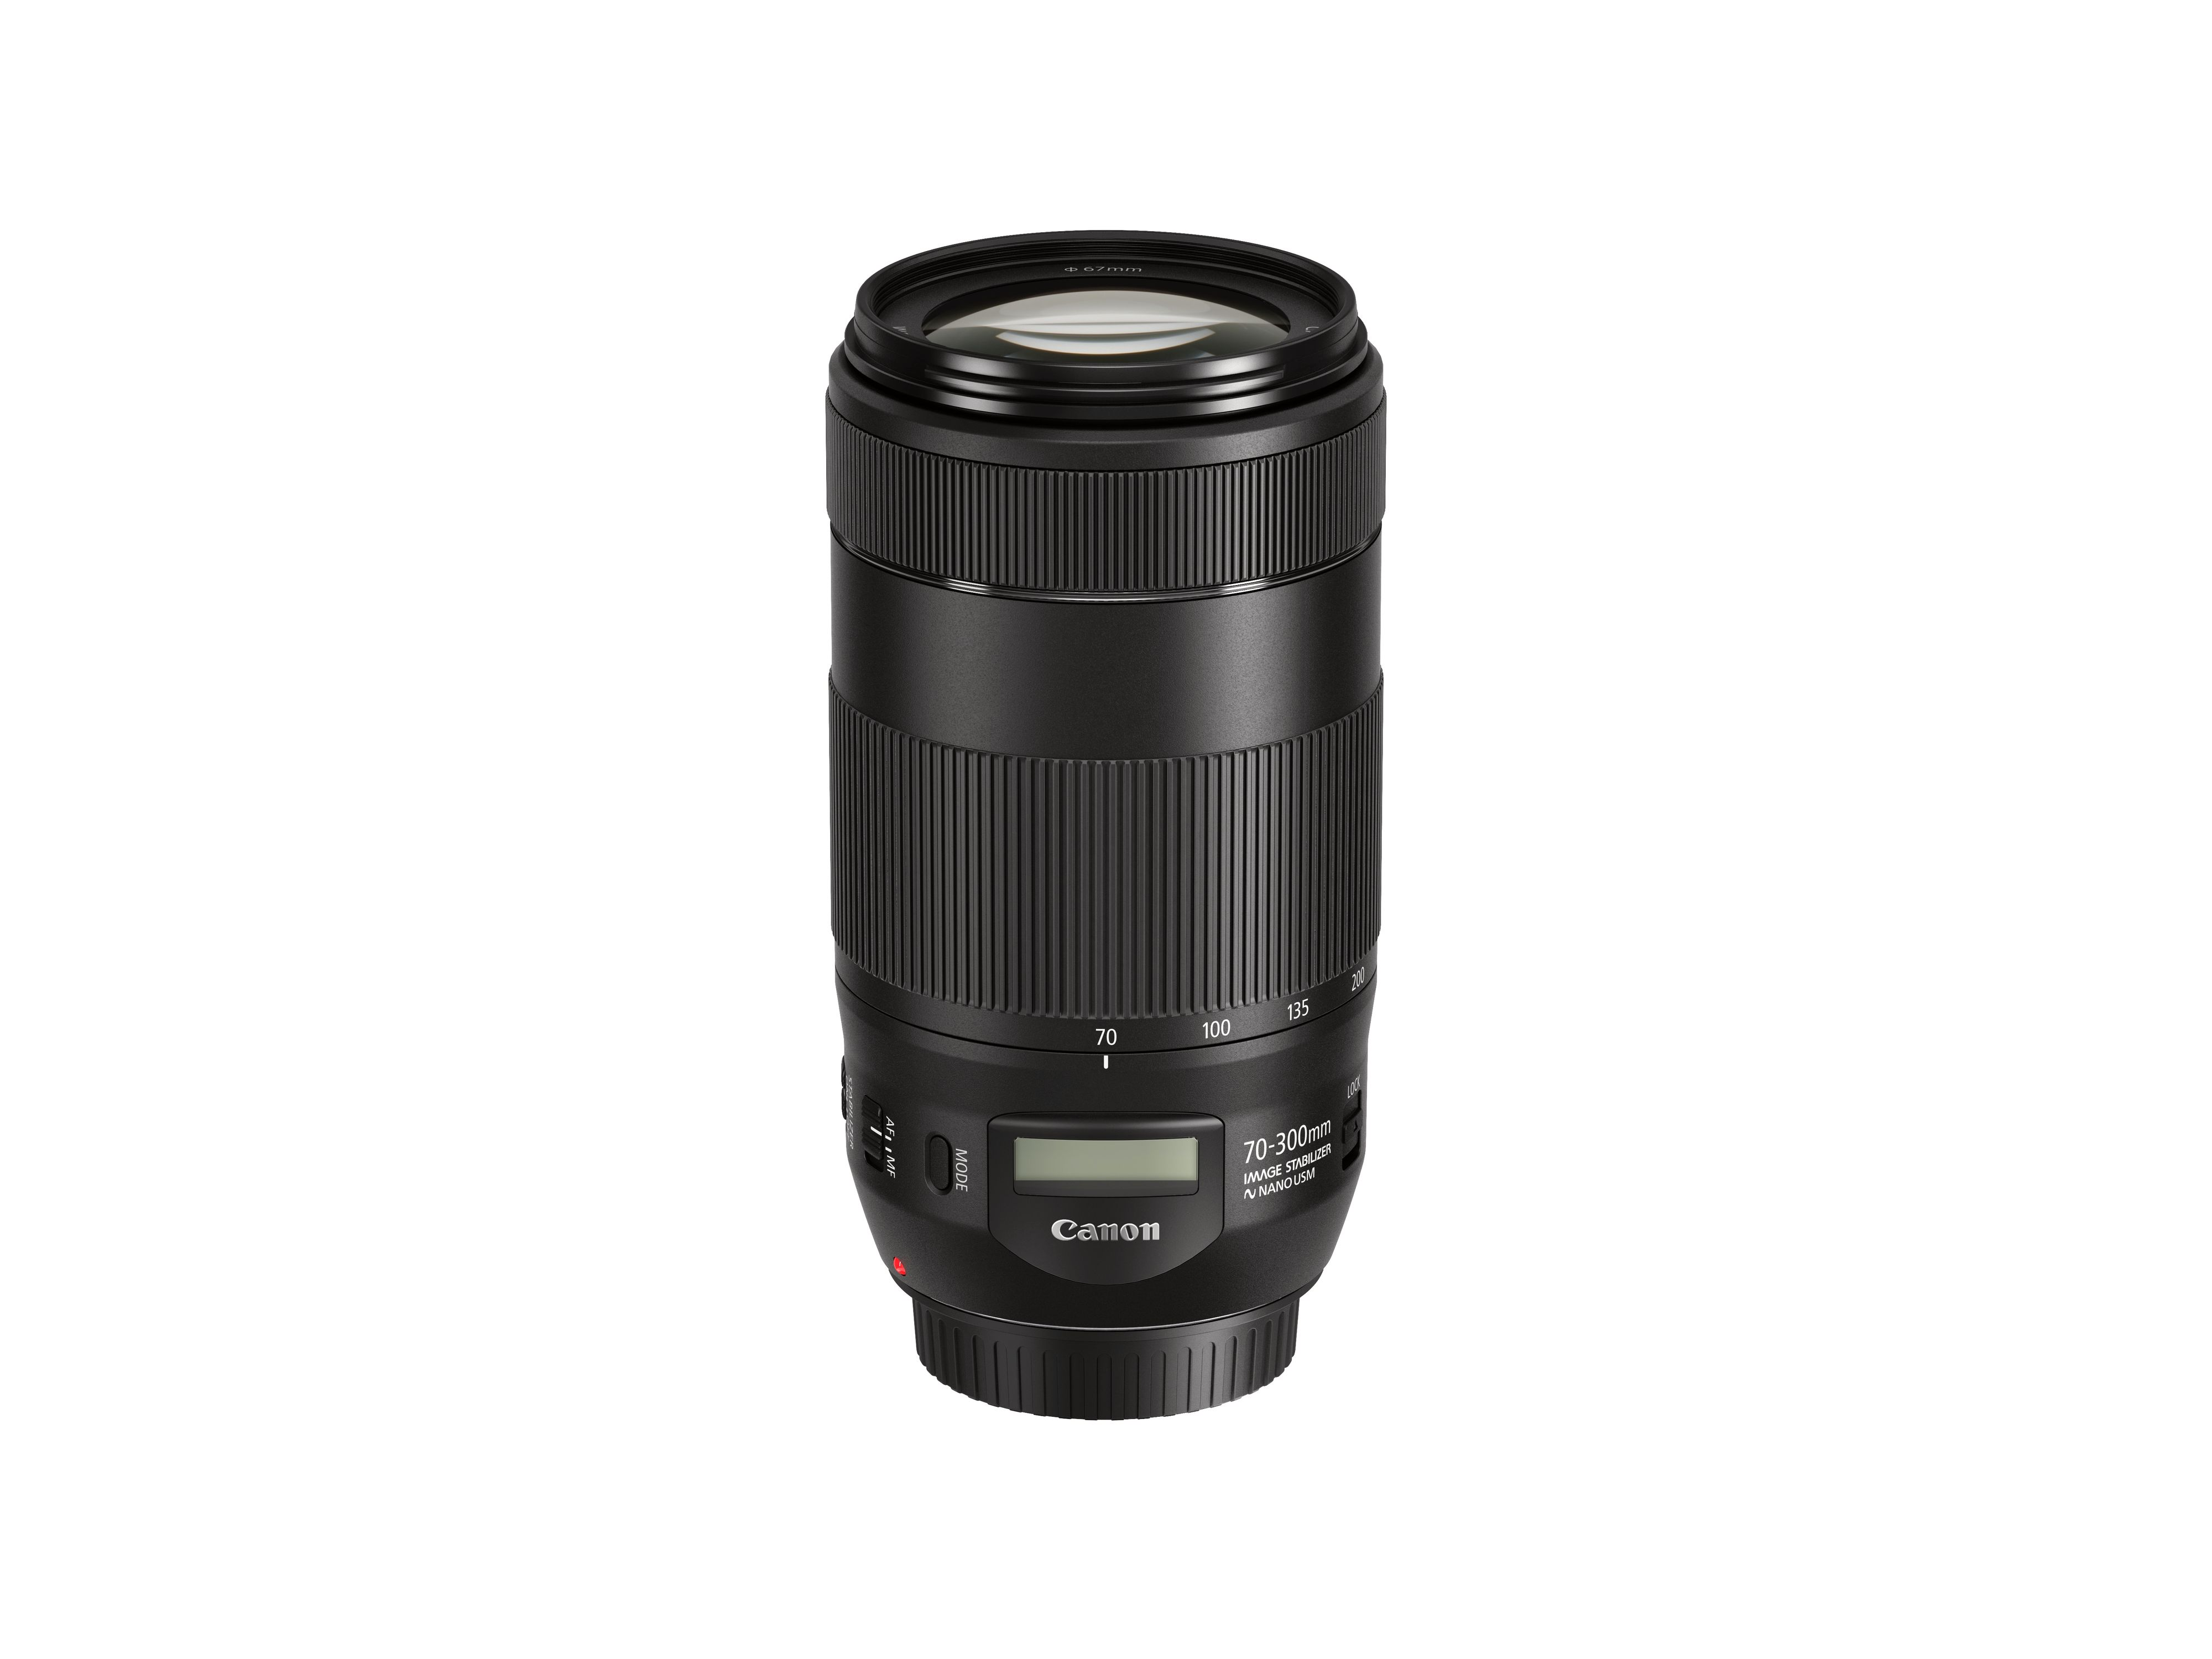 Canon EF 70-300mm F4-5.6 IS II USM.